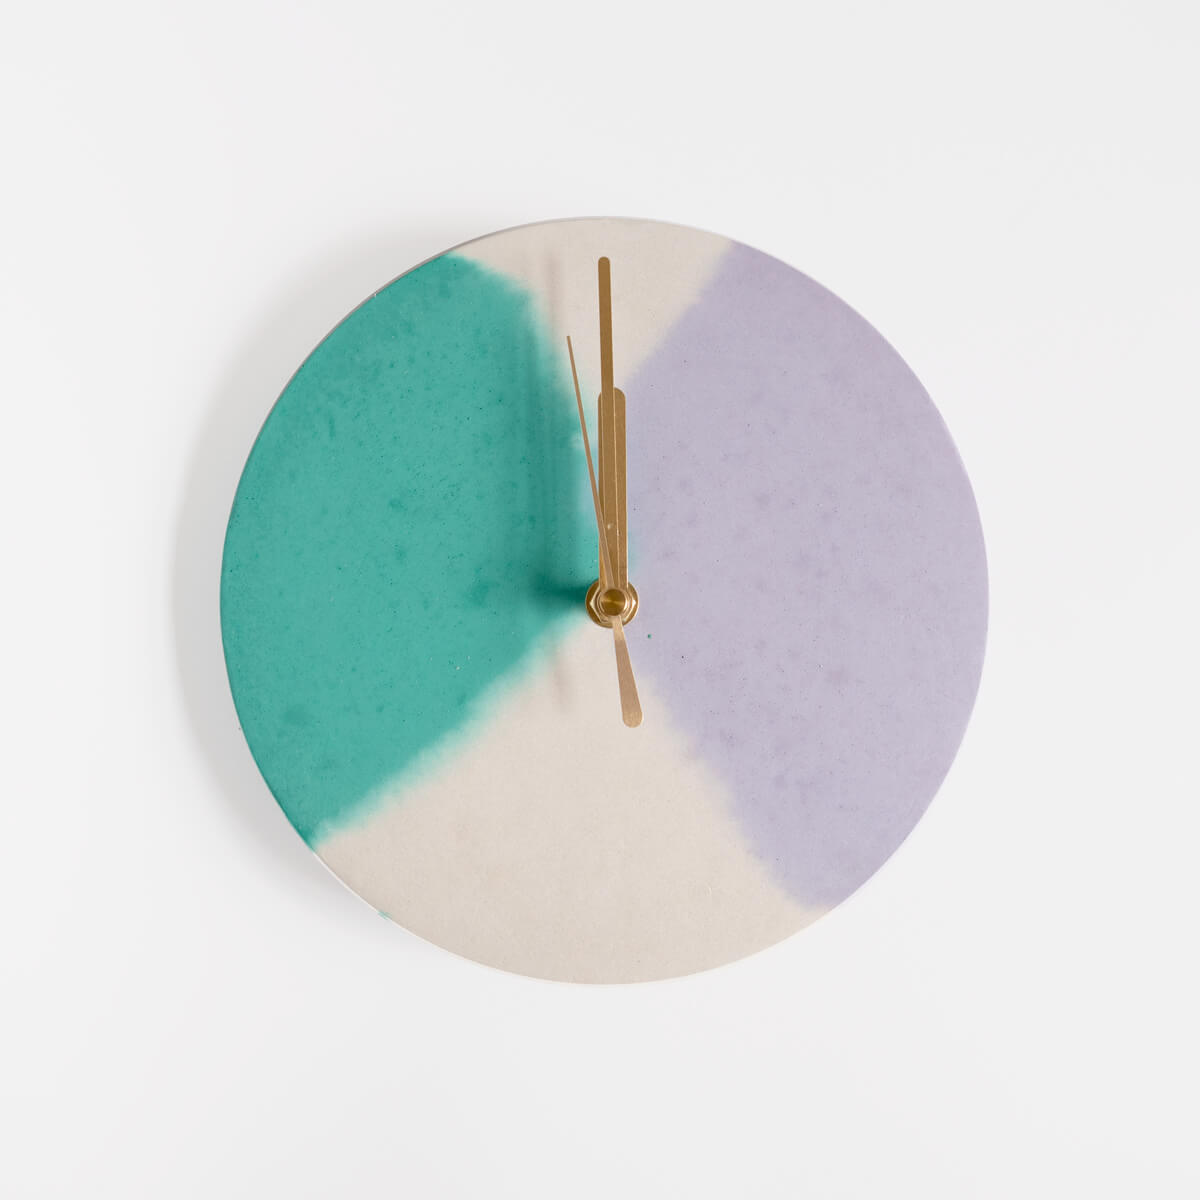 Round concrete wall clock with a sage and lilac pattern by Studio Emma for Curious Makers